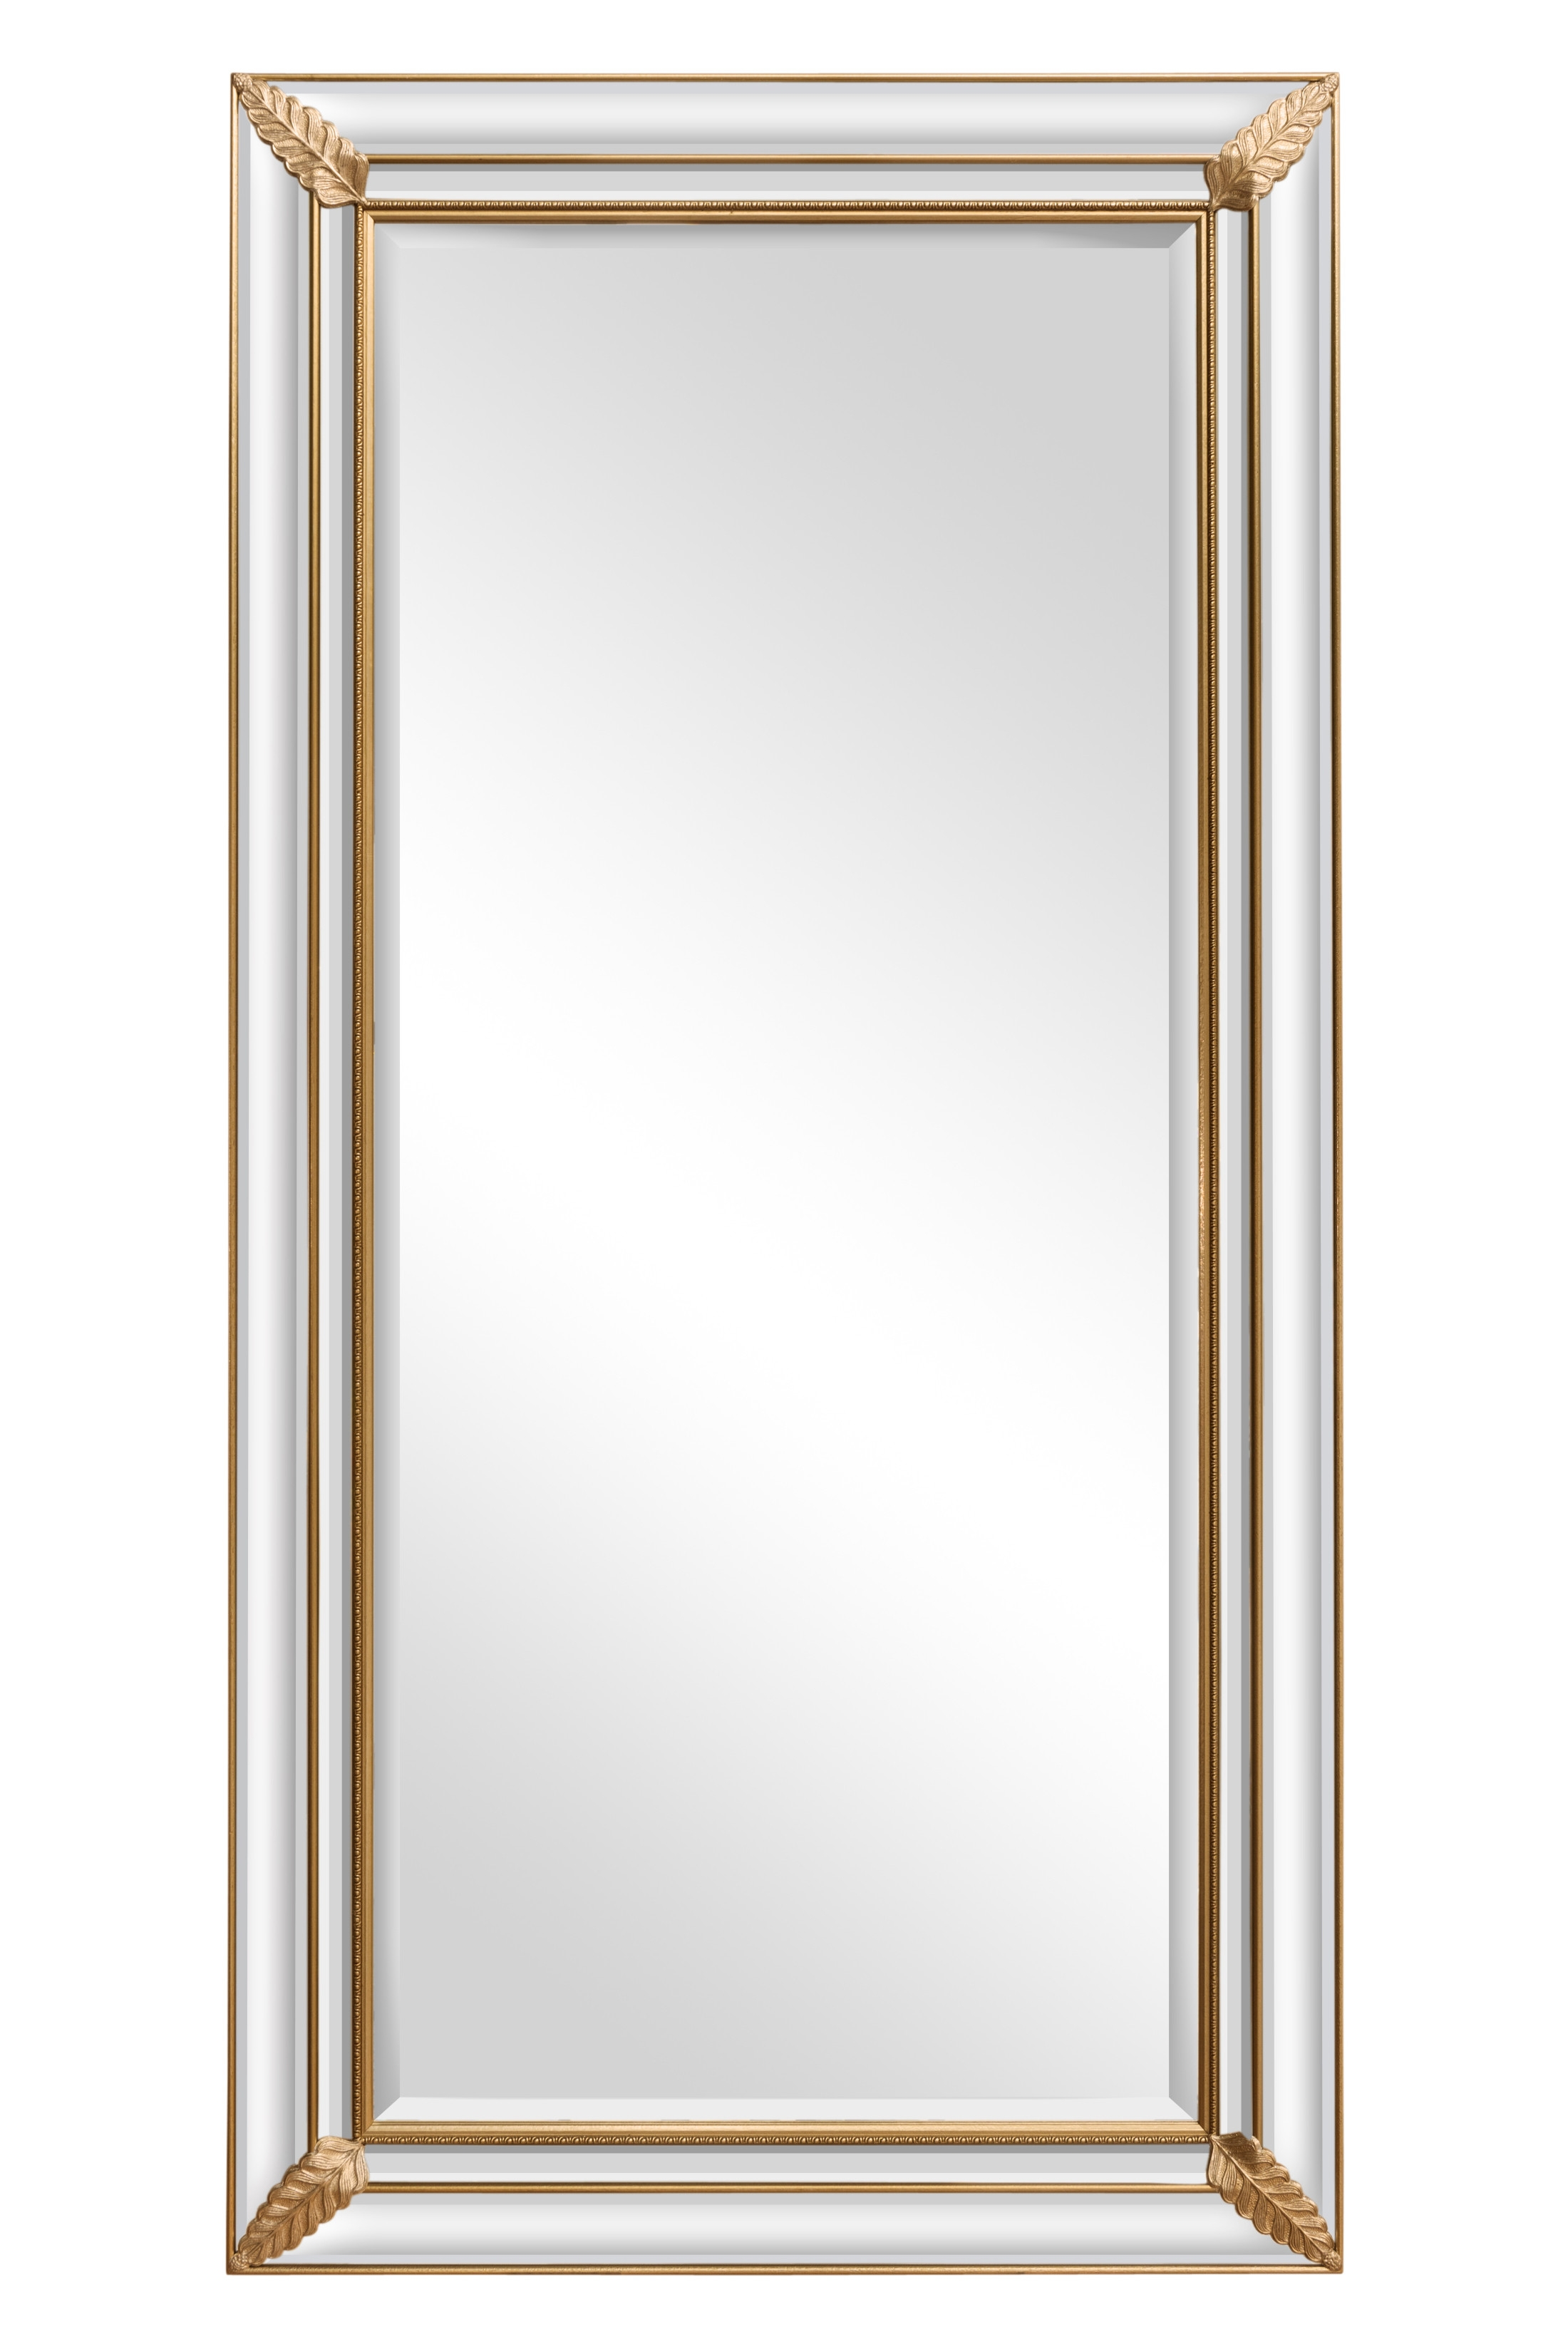 Liberty Gold Acanthus Bedroom Mirrors For Sale Panfili Mirrors With Brass Mirrors For Sale (Image 10 of 15)